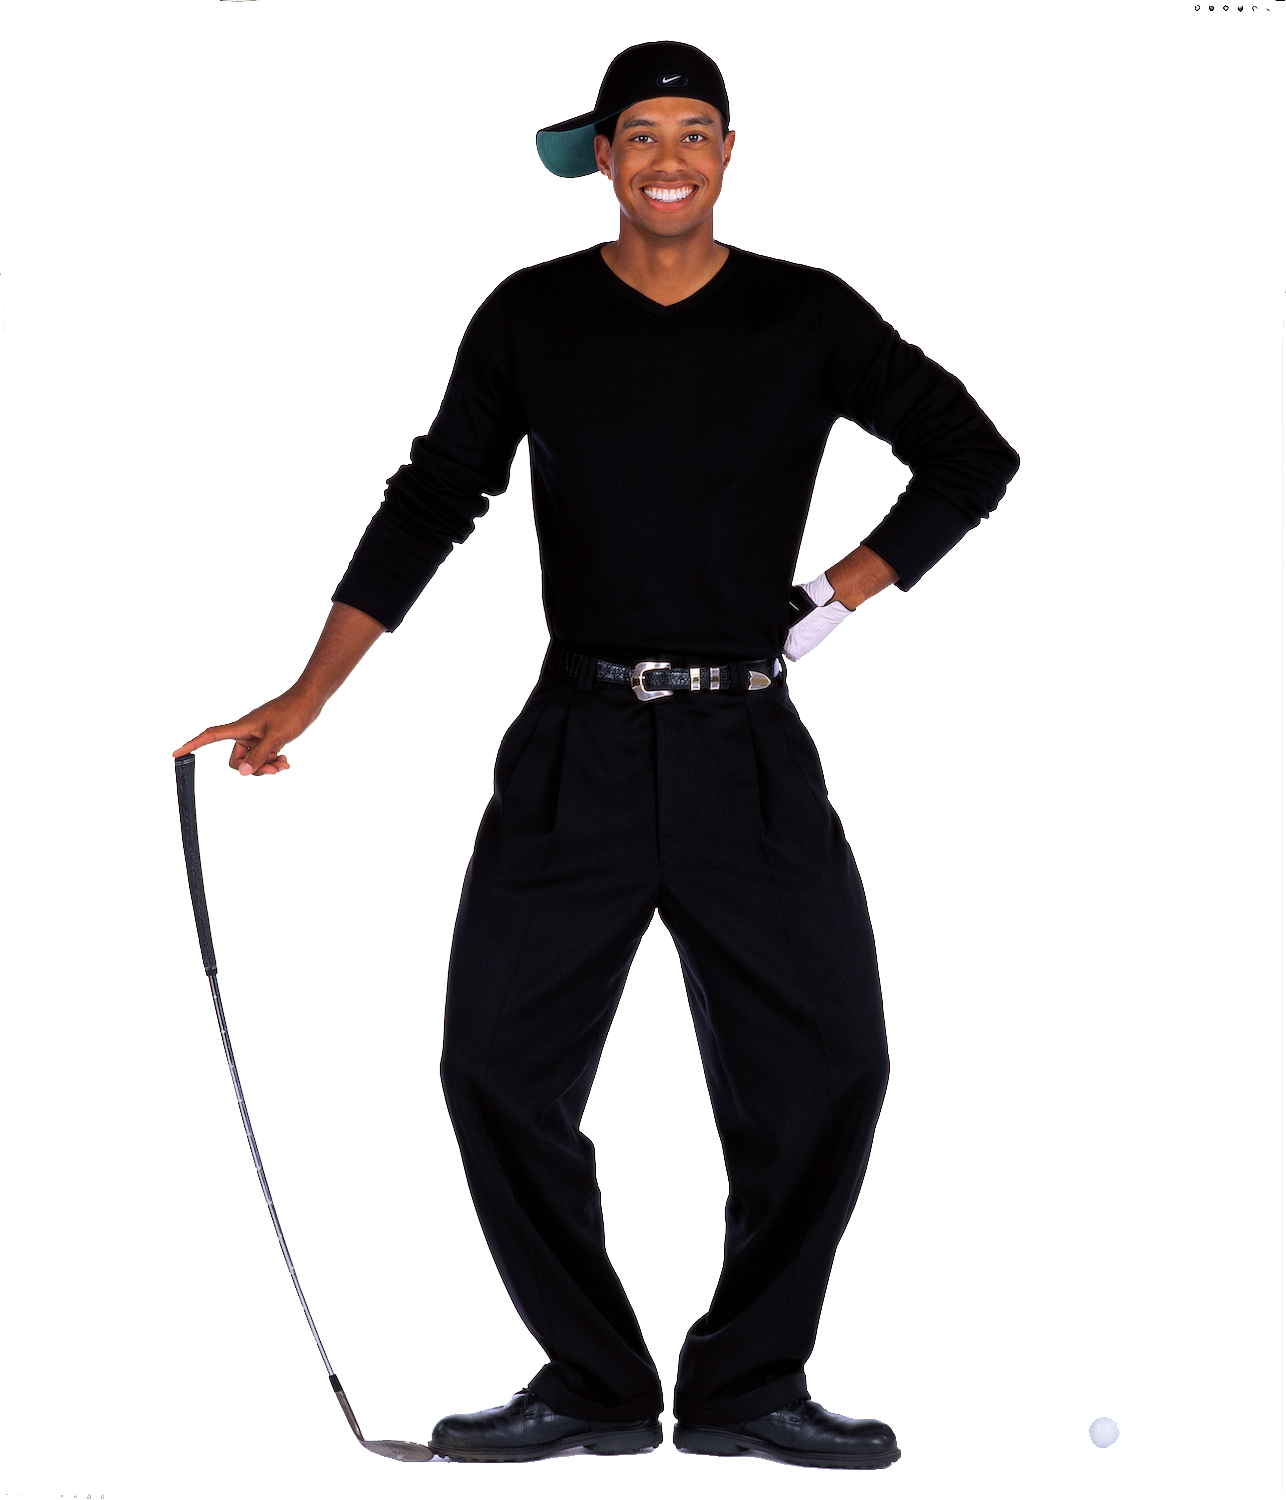 Tiger Woods Transparent Image PNG Image